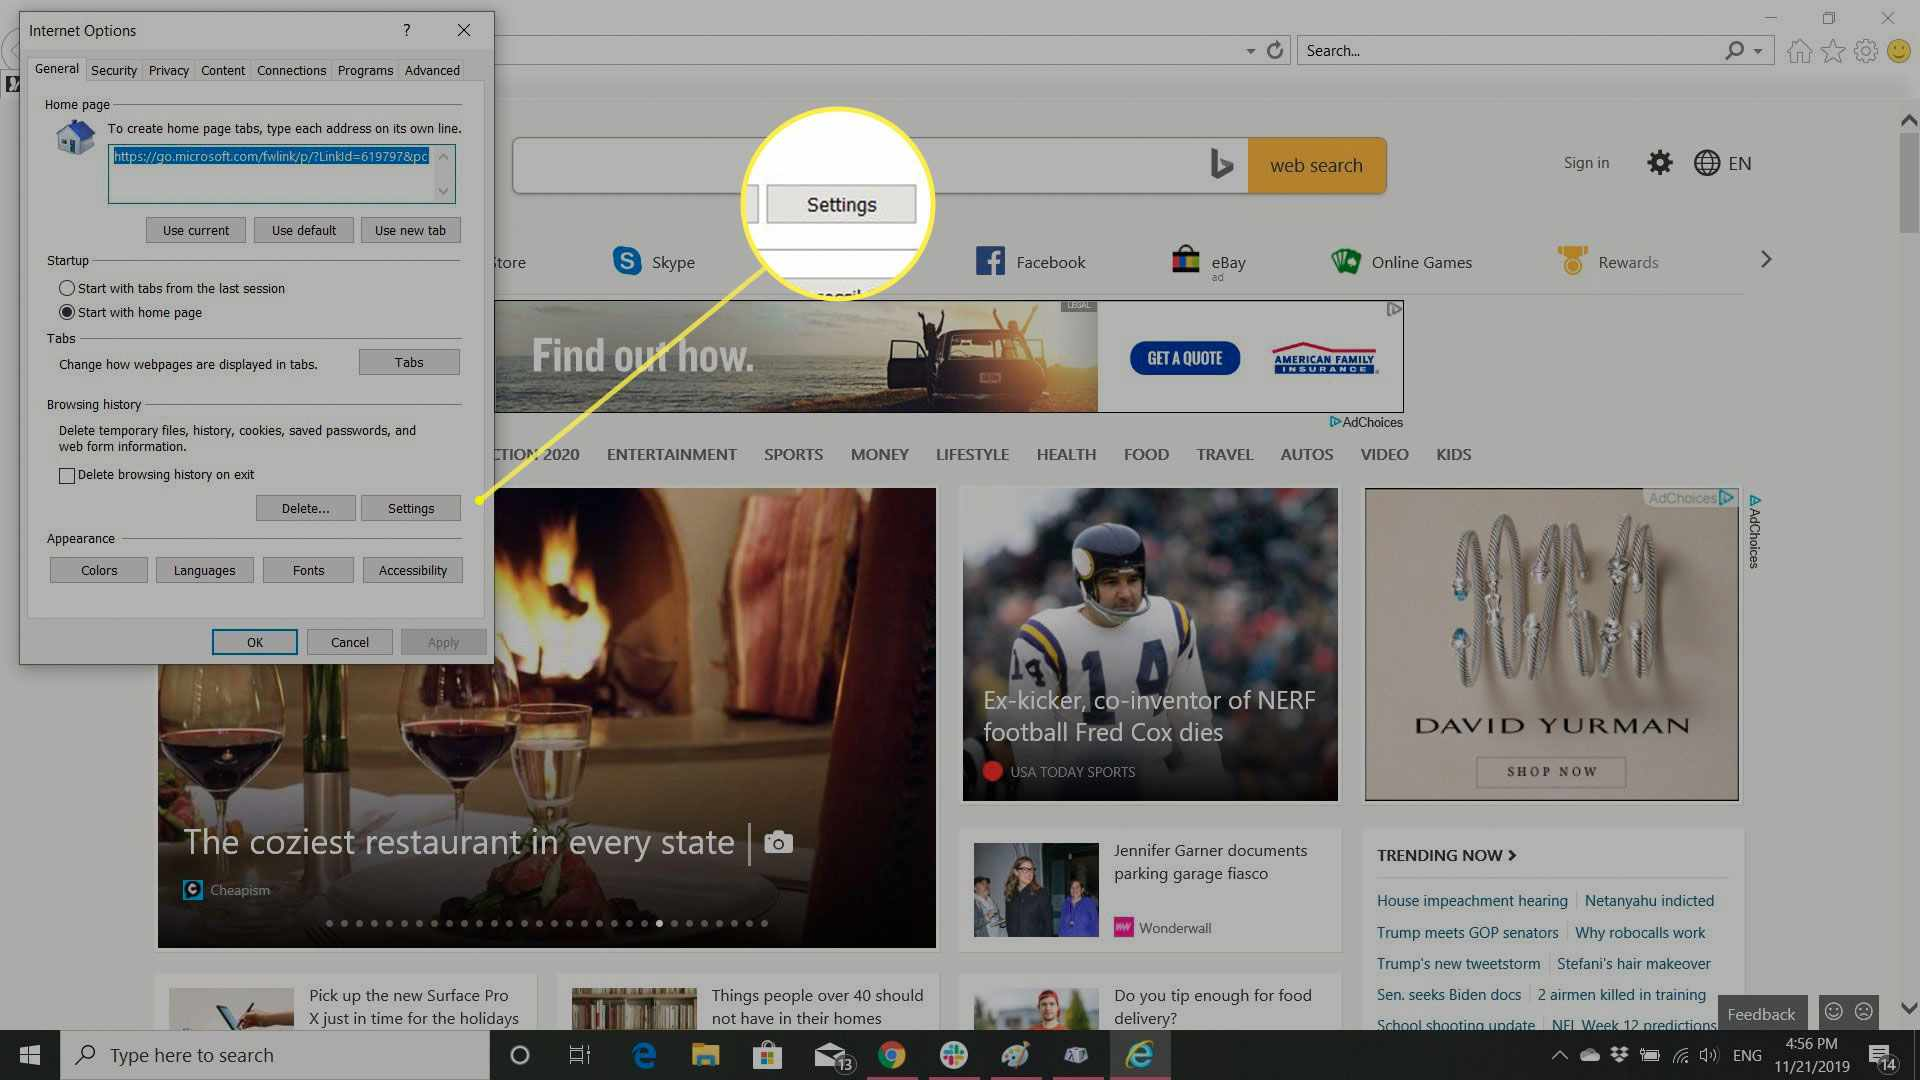 Internet Settings in IE with the Browser History Settings button highlighted